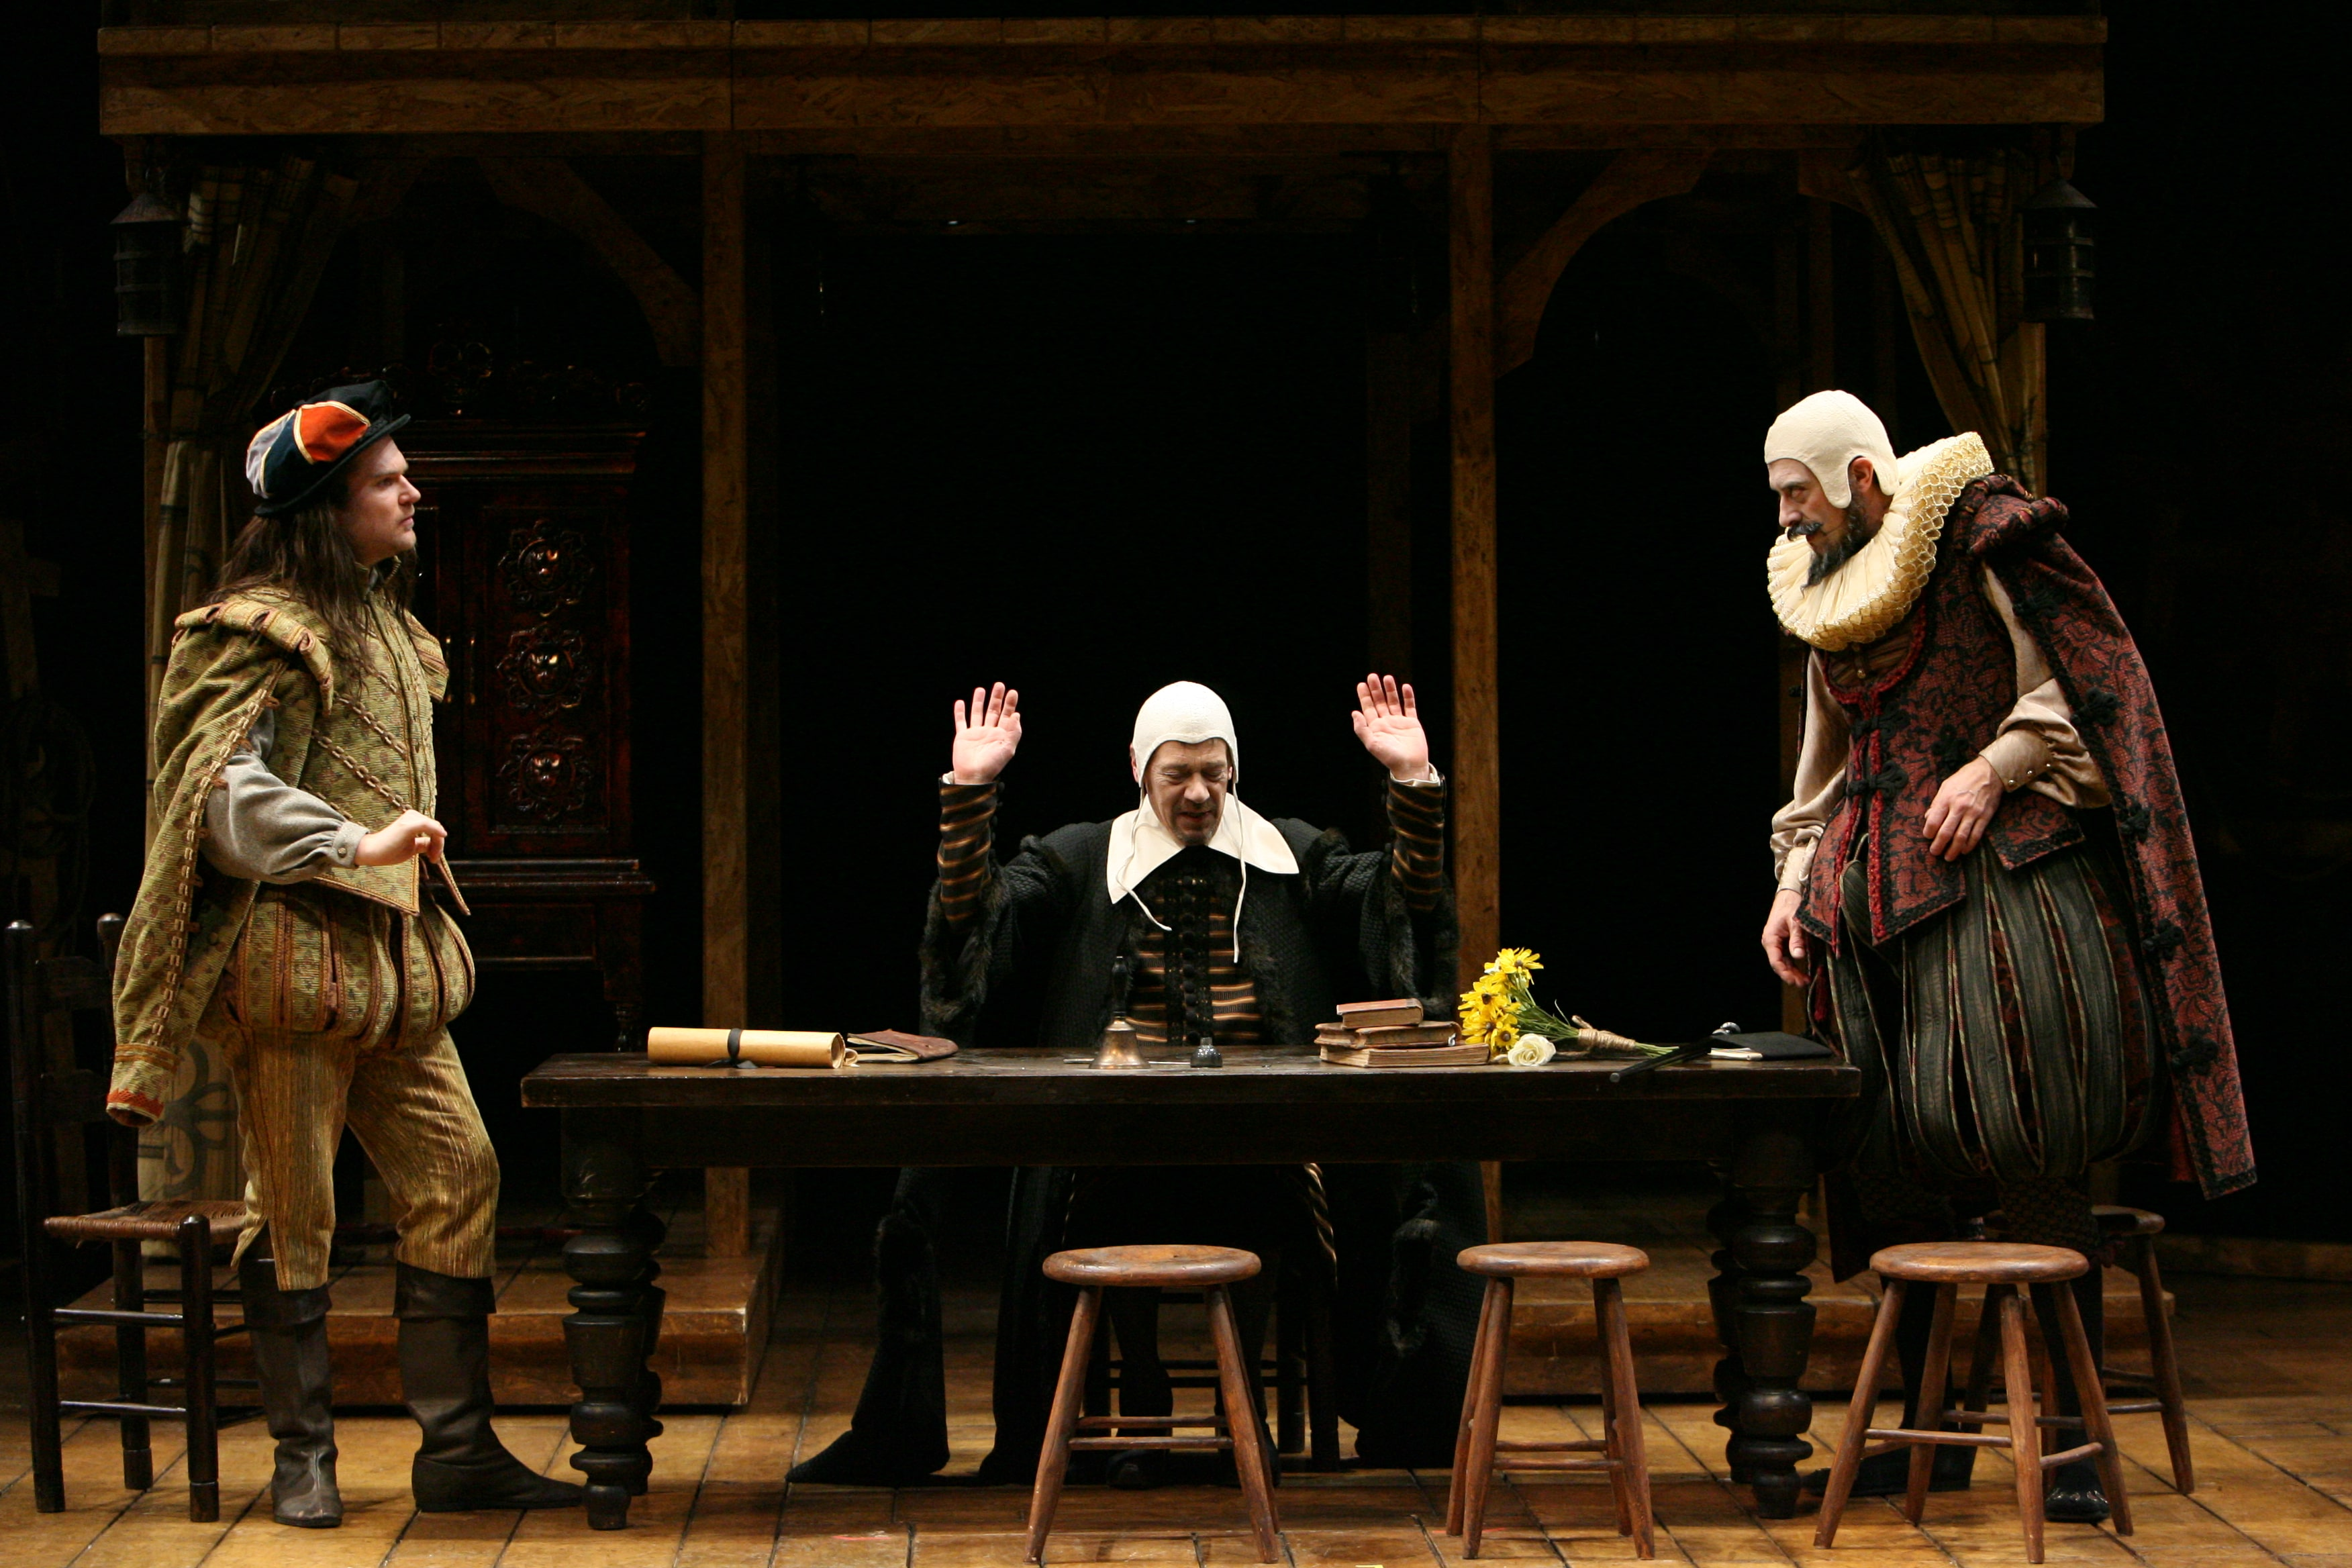 Three men in Elizabethan garb and caps around large wooden table with books on top.